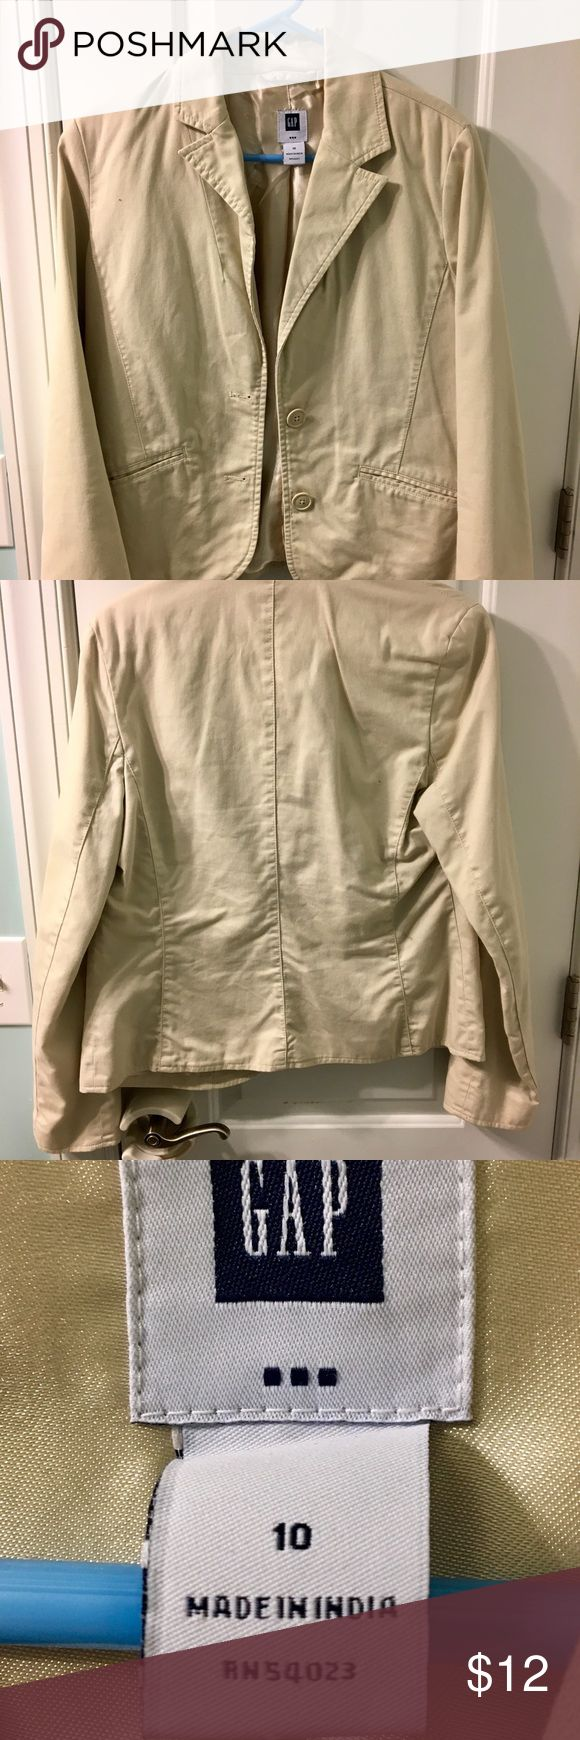 Gap khaki jacket size 10 blazer Gap khaki jacket size 10 GAP Jackets & Coats Blazers